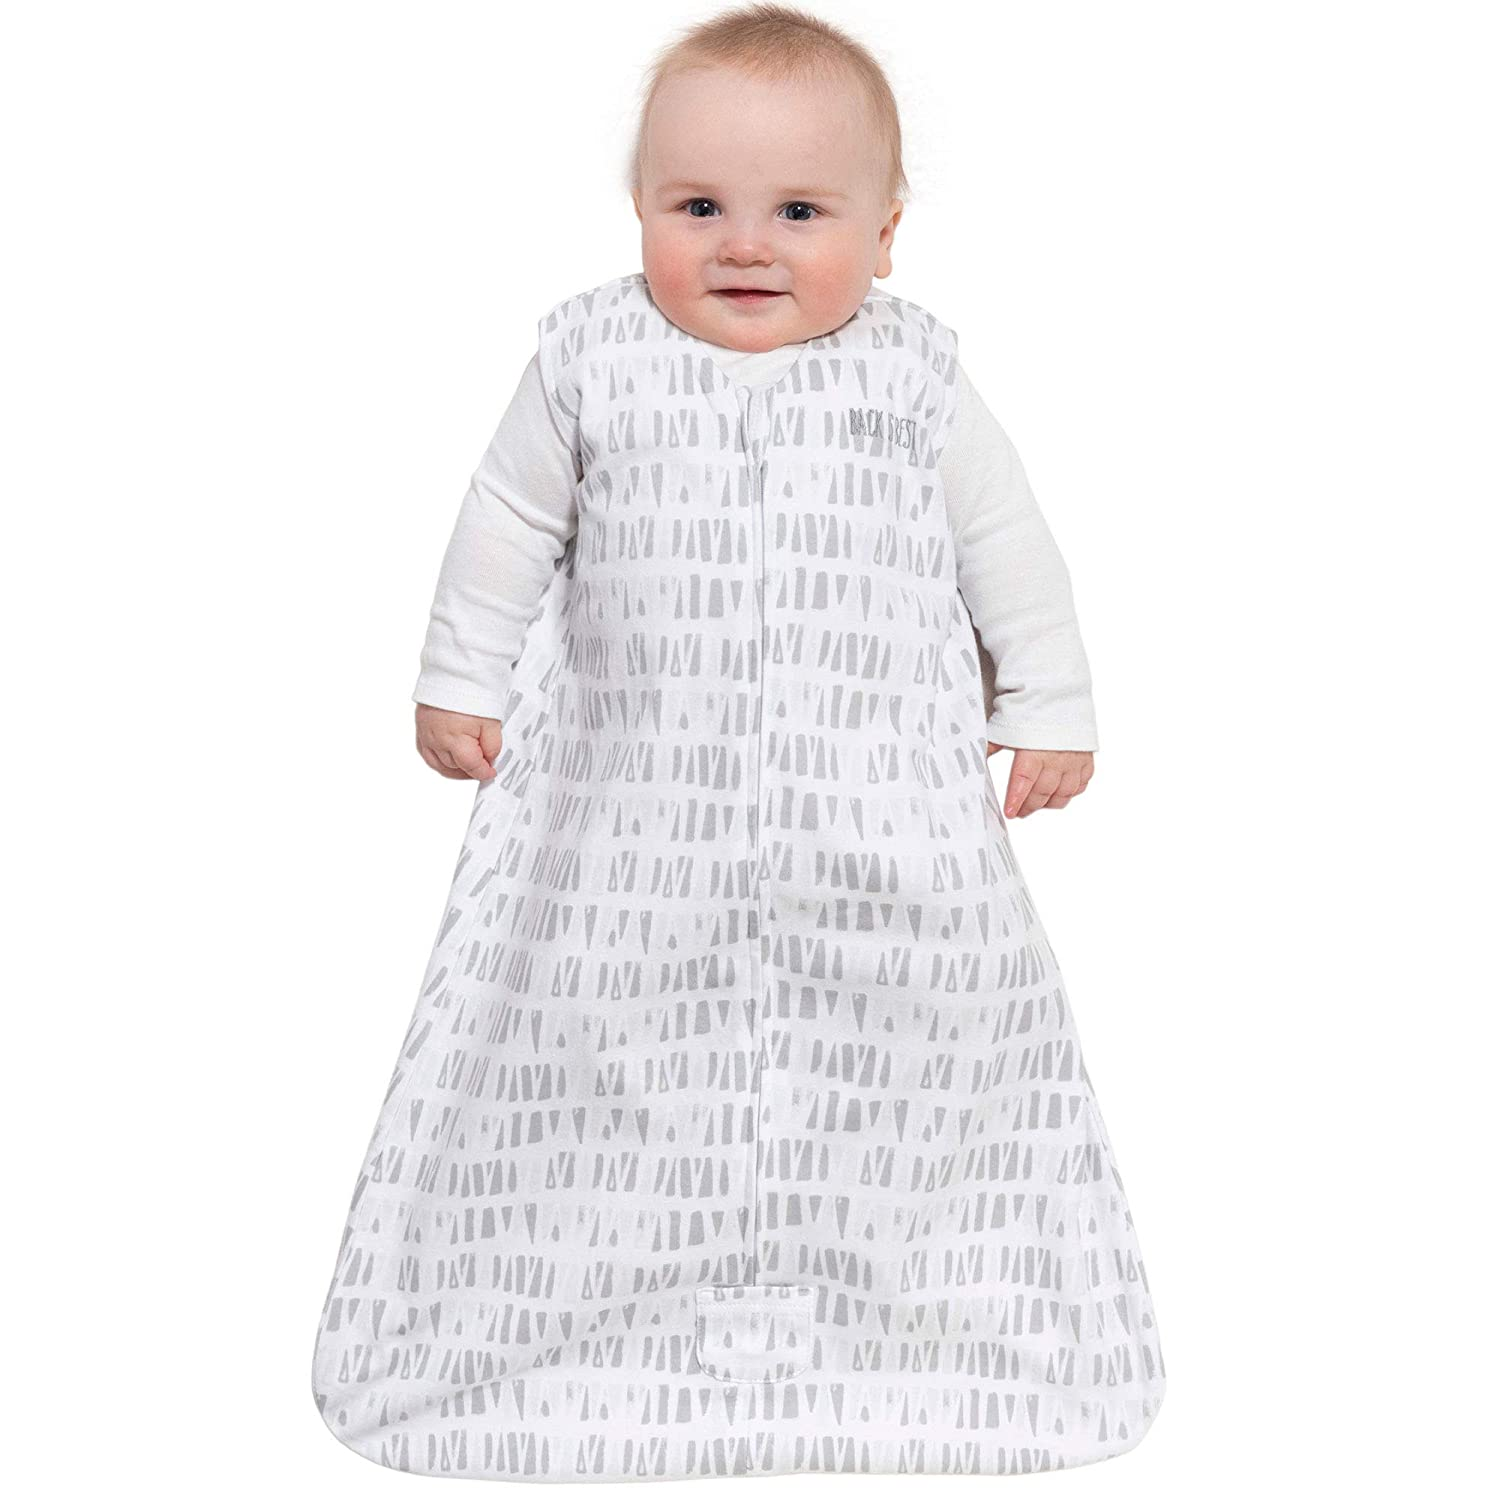 Squares and Triangles Grey Small Halo Sleepsack Cotton Wearable Blanket